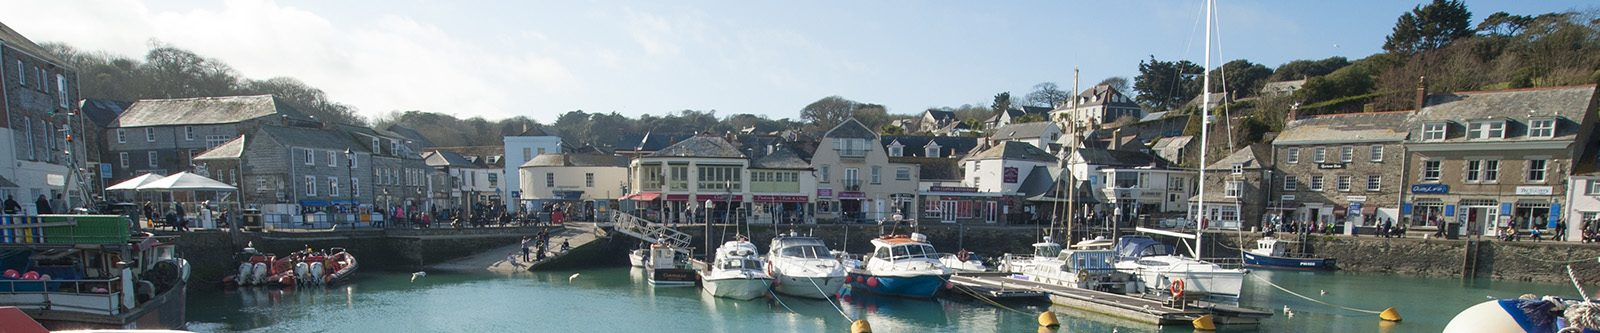 Padstow in winter